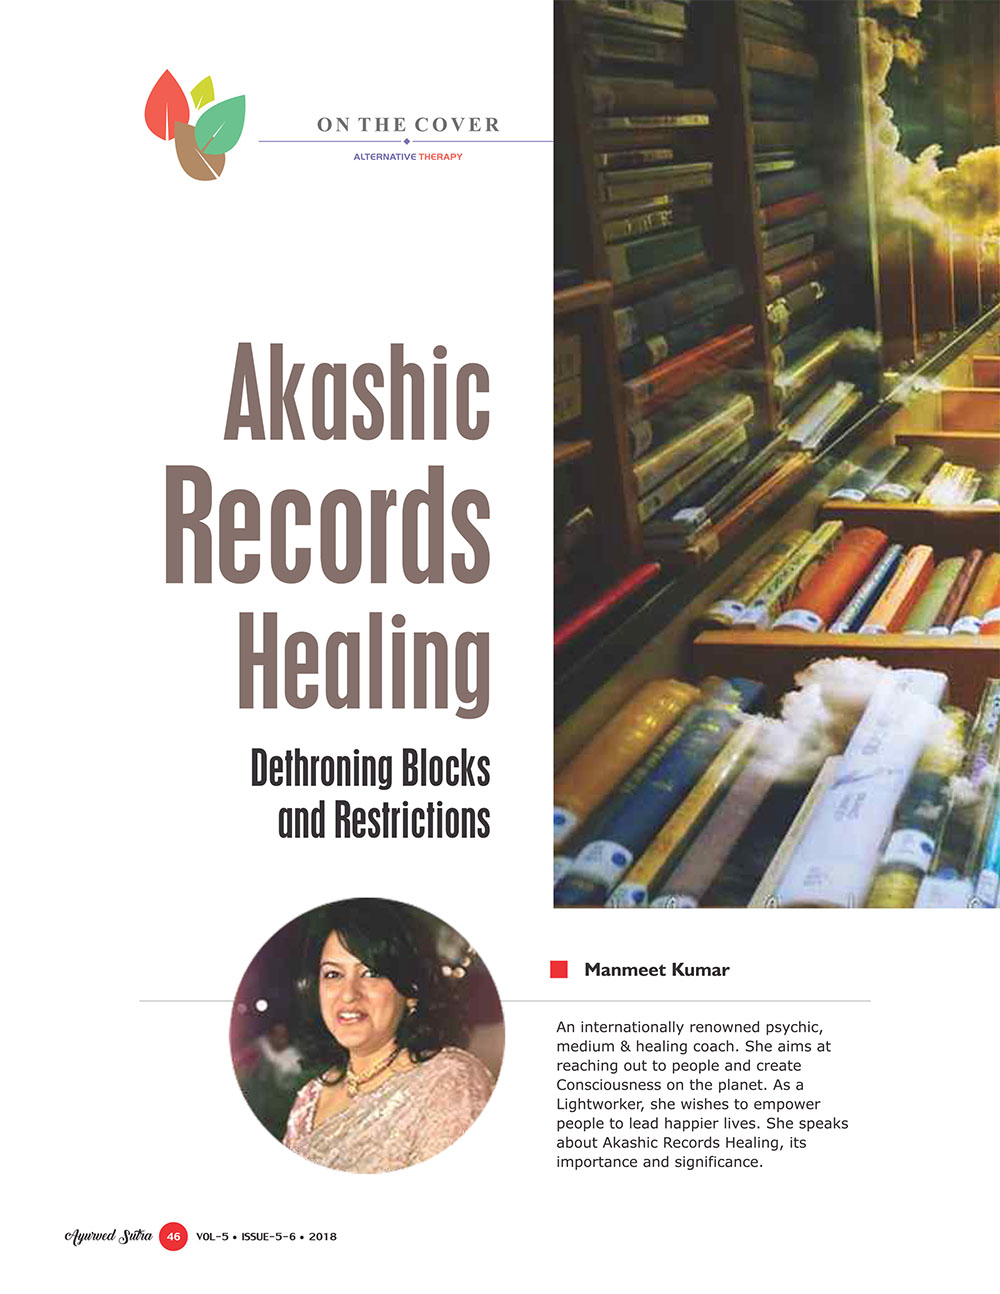 Ayurvedsutra Vol 05 issue 05 06 48 - Akashic Records Healing:  Dethroning Blocks and Restrictions